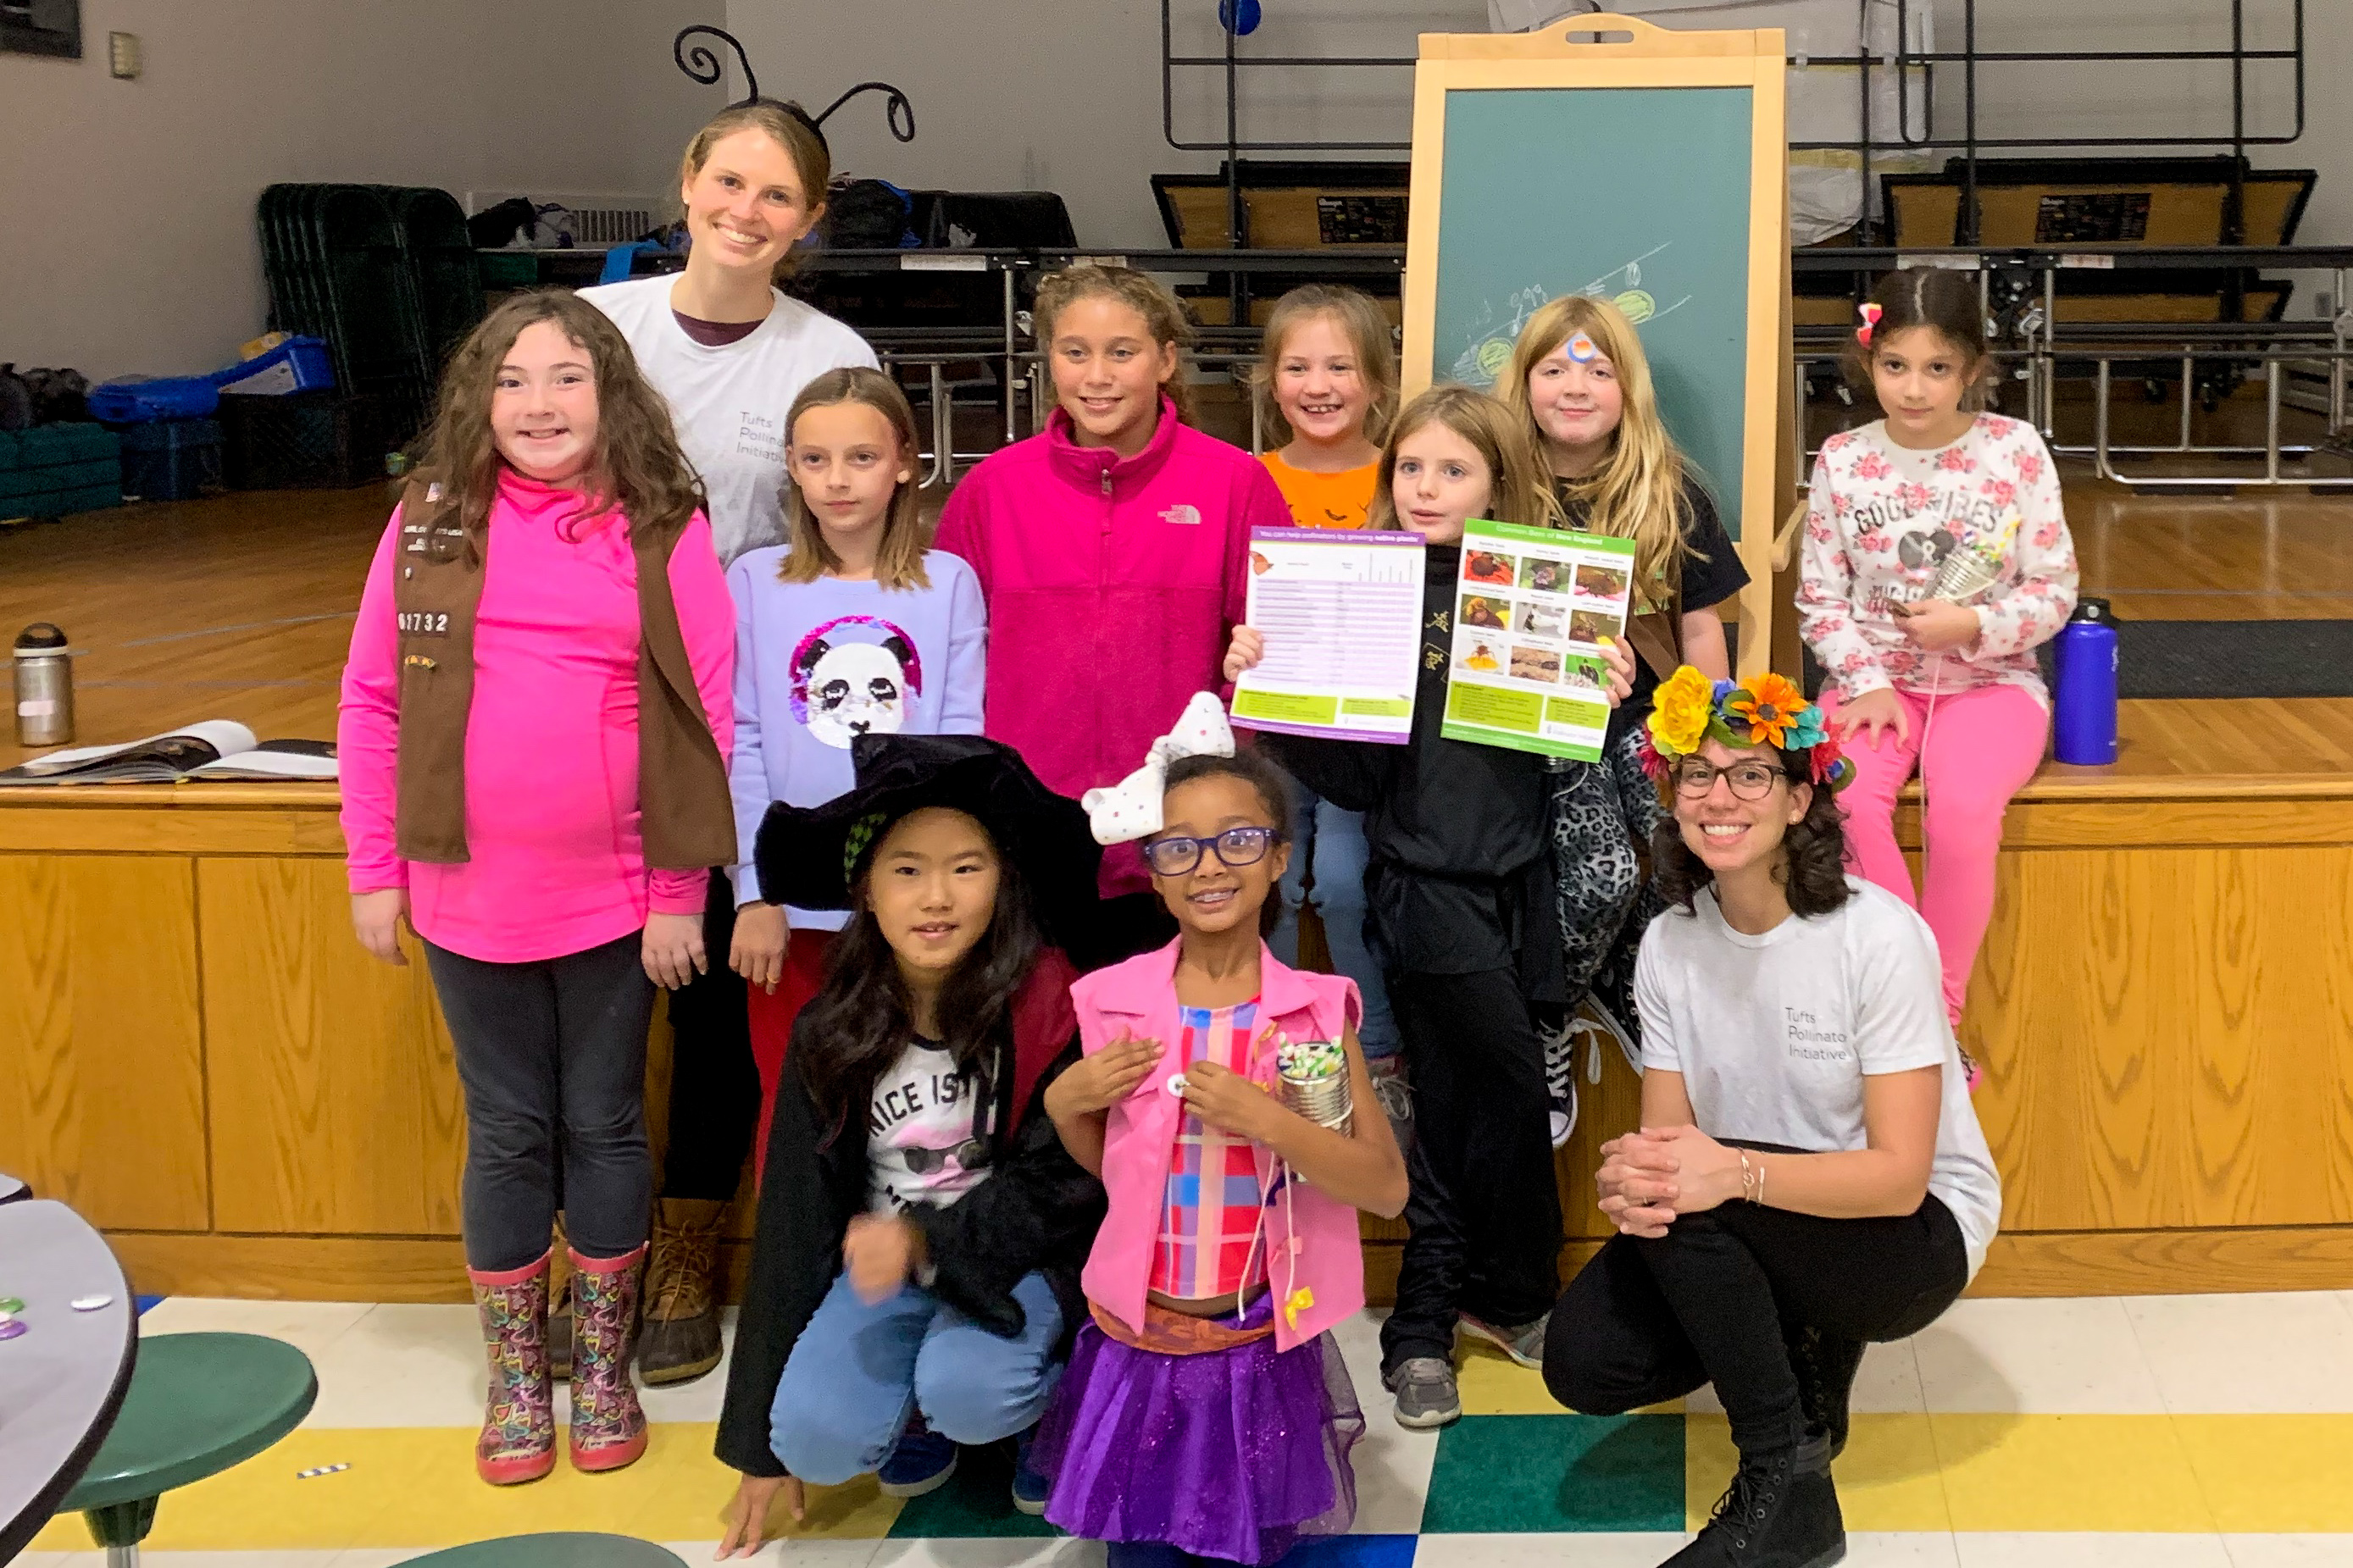 Rachael E. Bonoan and girl scout troop